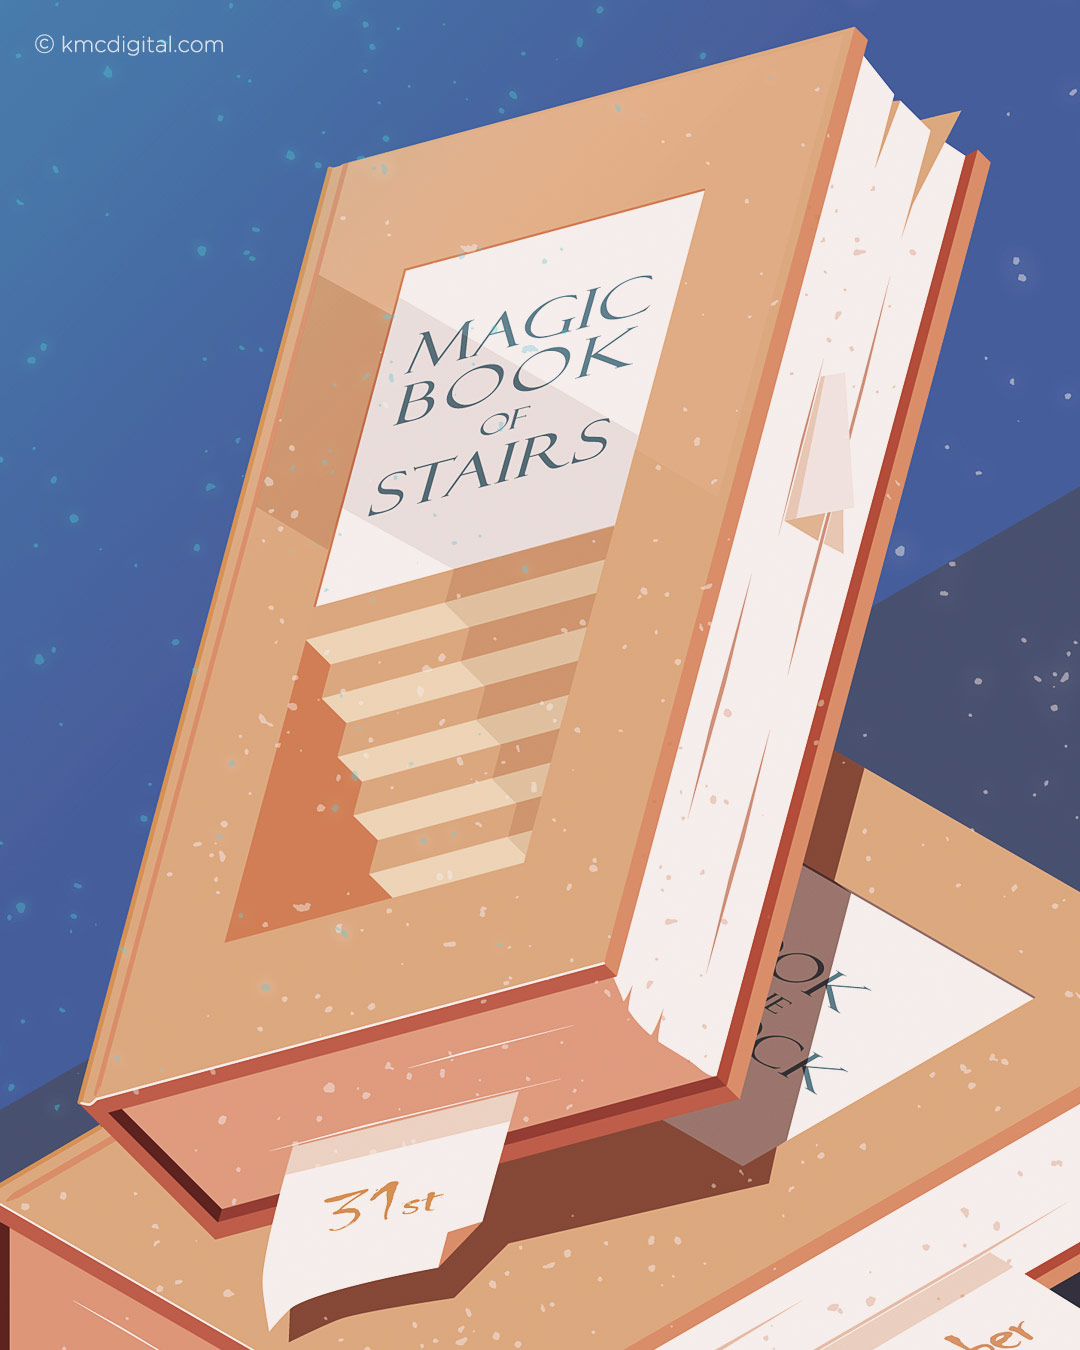 Illustration magic book of stairs